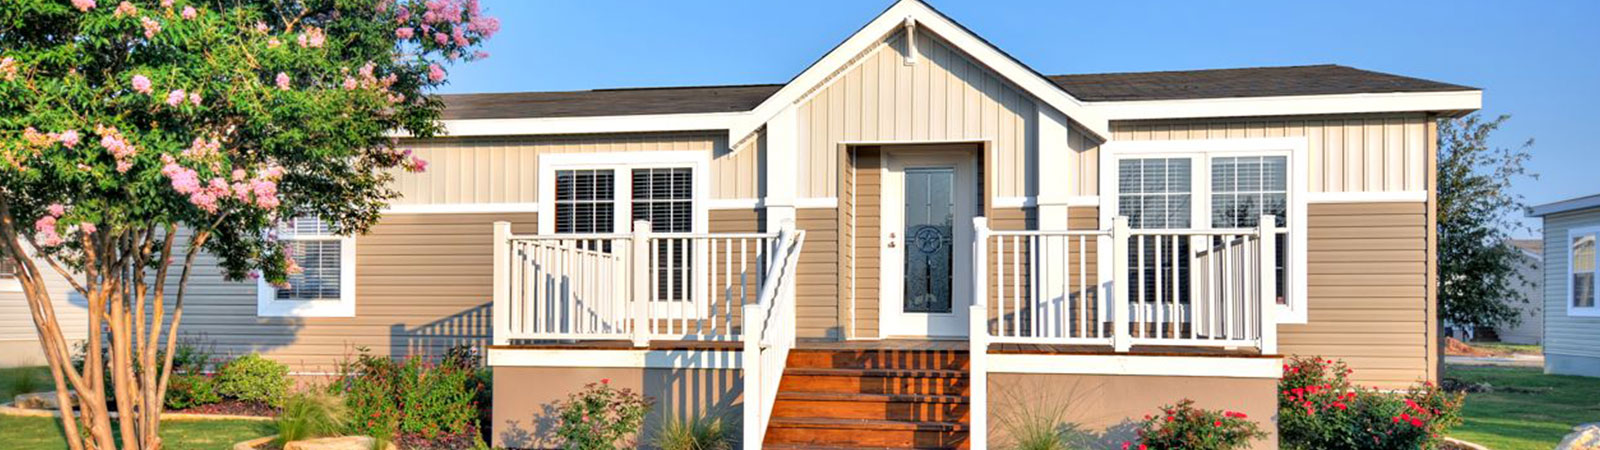 Manufactured Home Loans